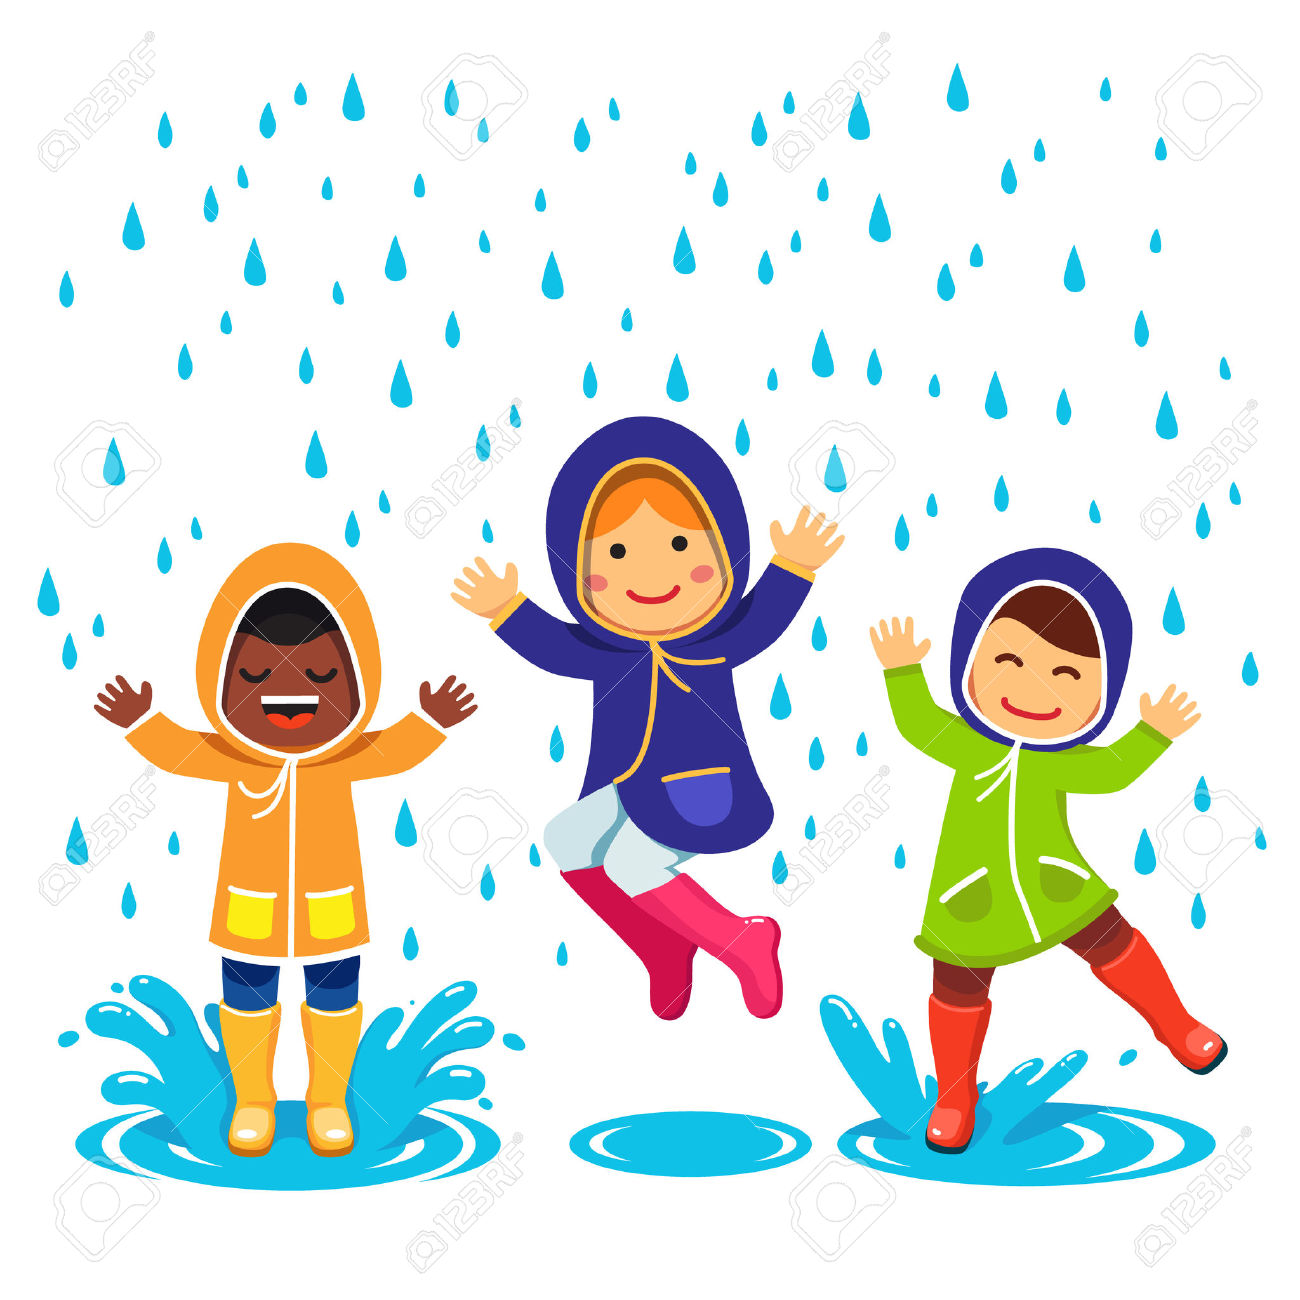 Kids In Raincoats And Rubber Boots Playing In The Rain. Children.